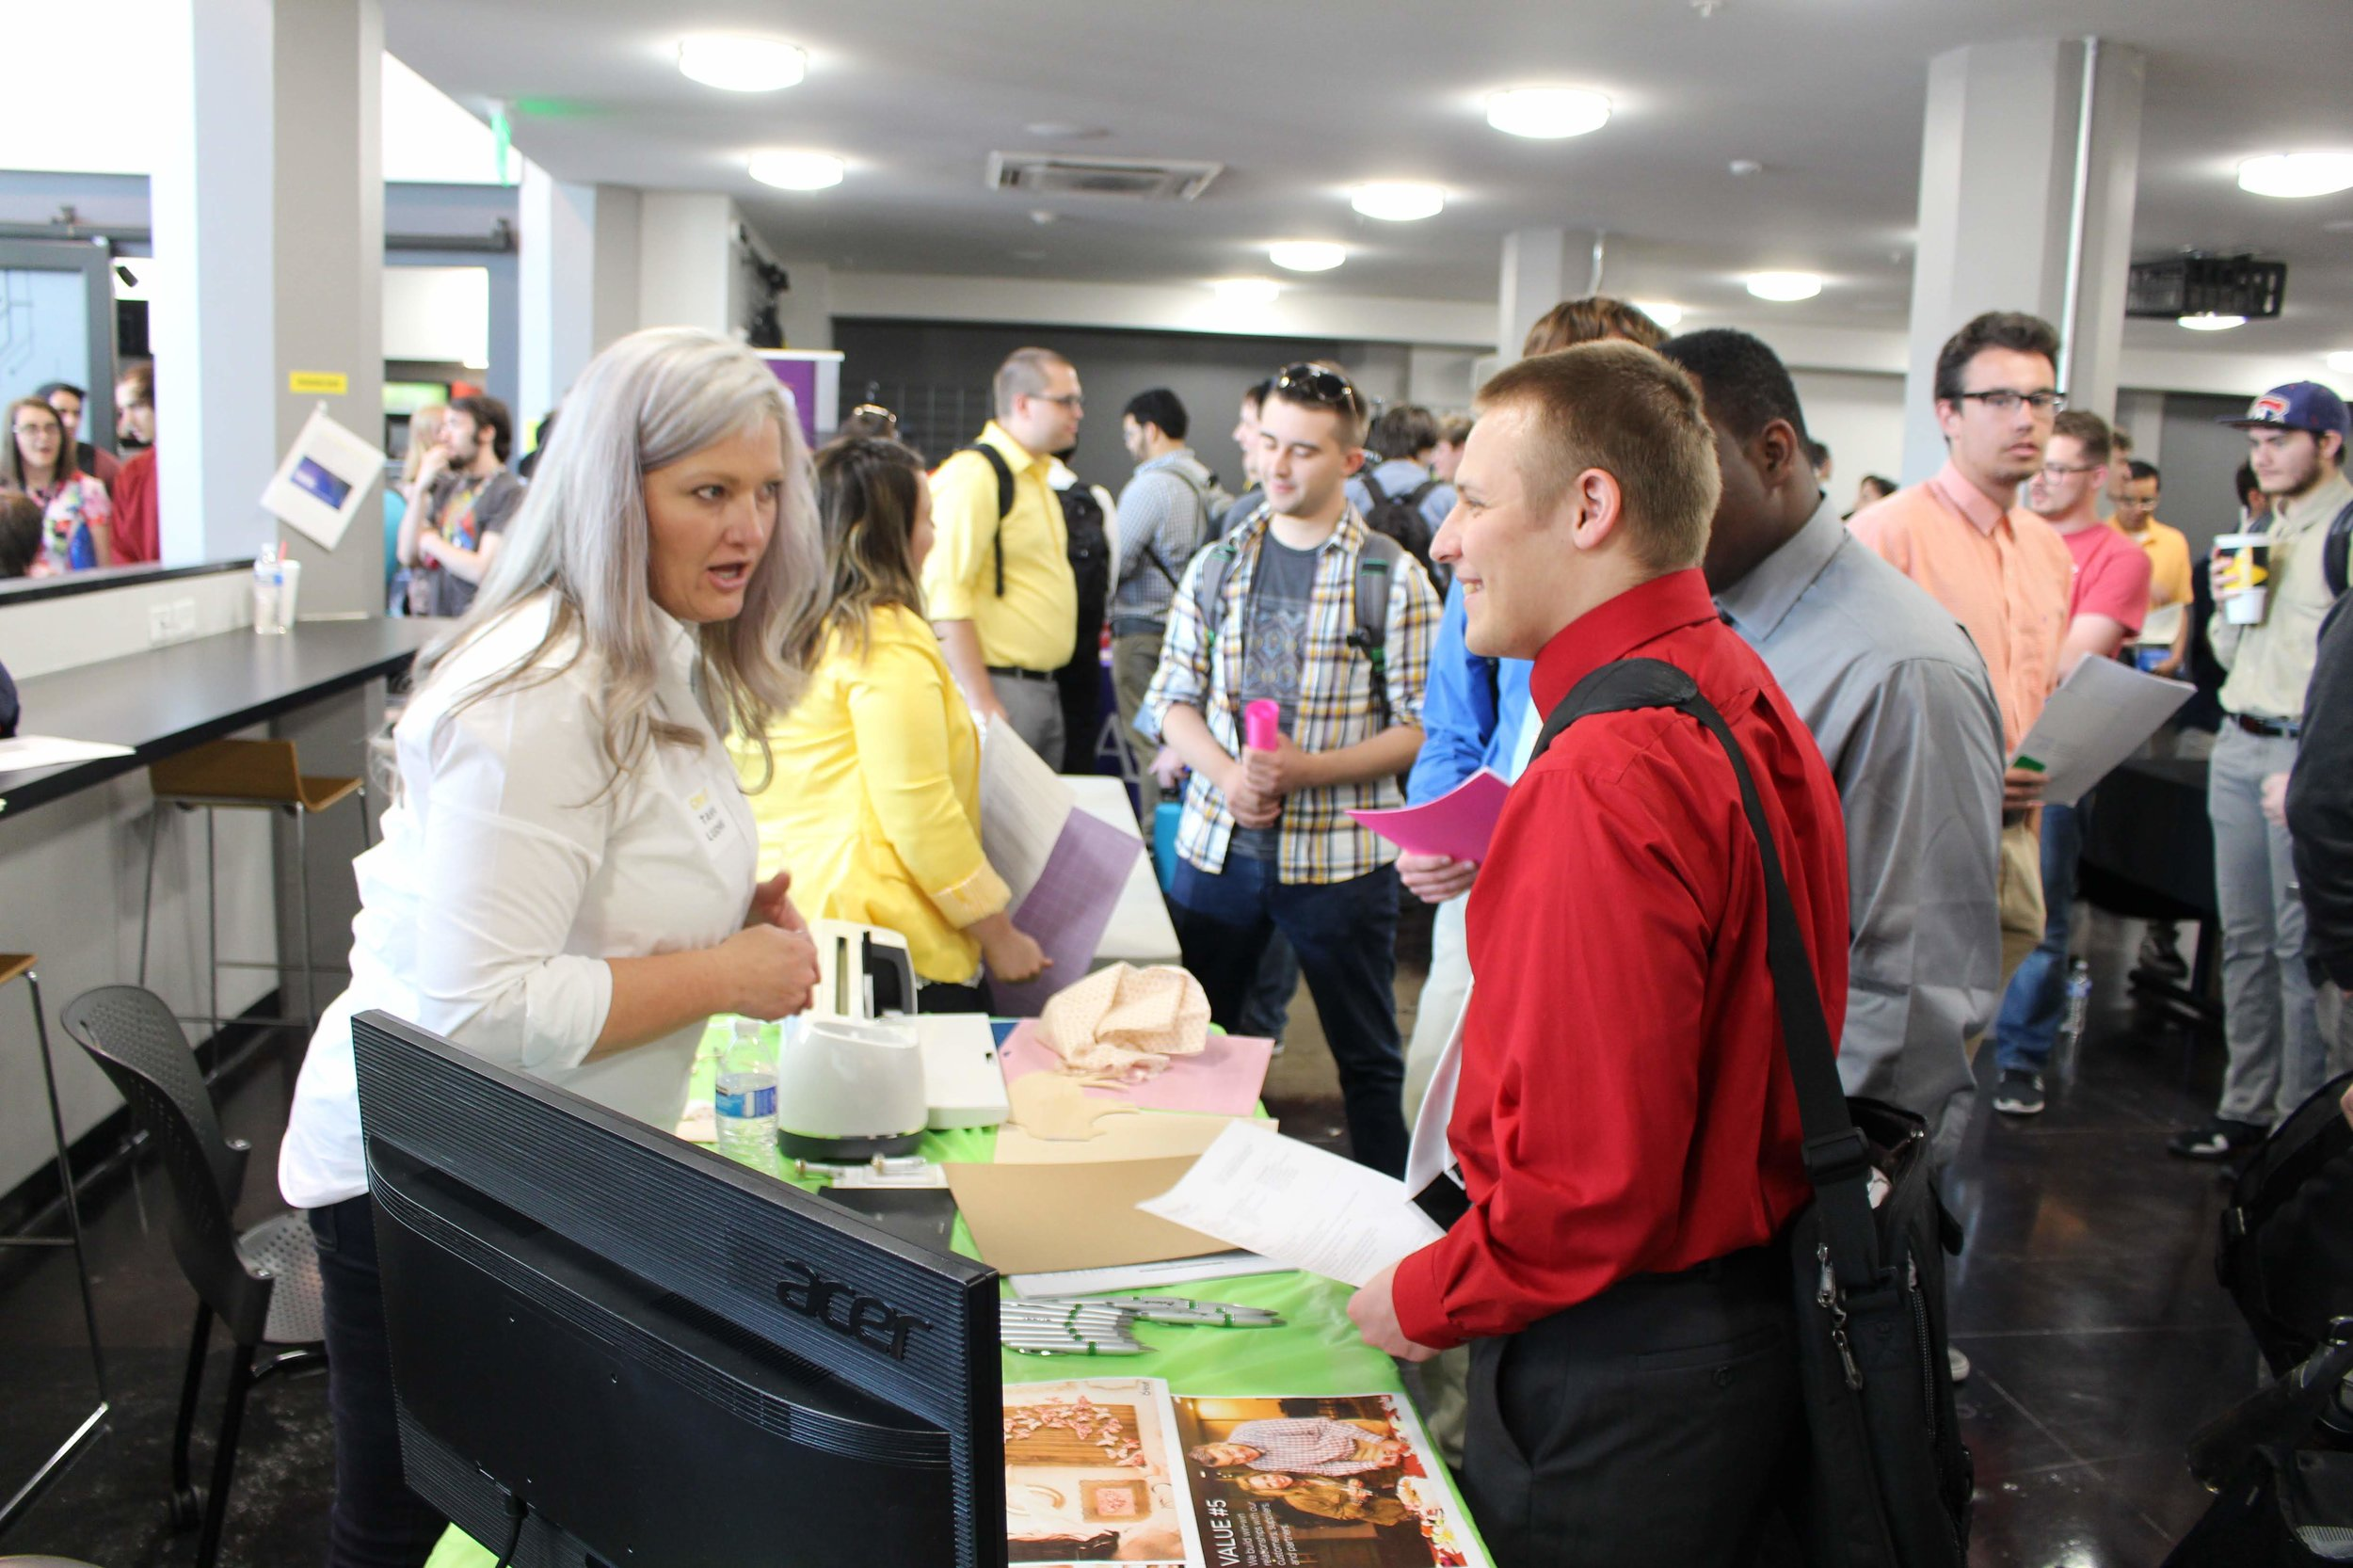 Students connect with recruiters and developers from local and national companies.